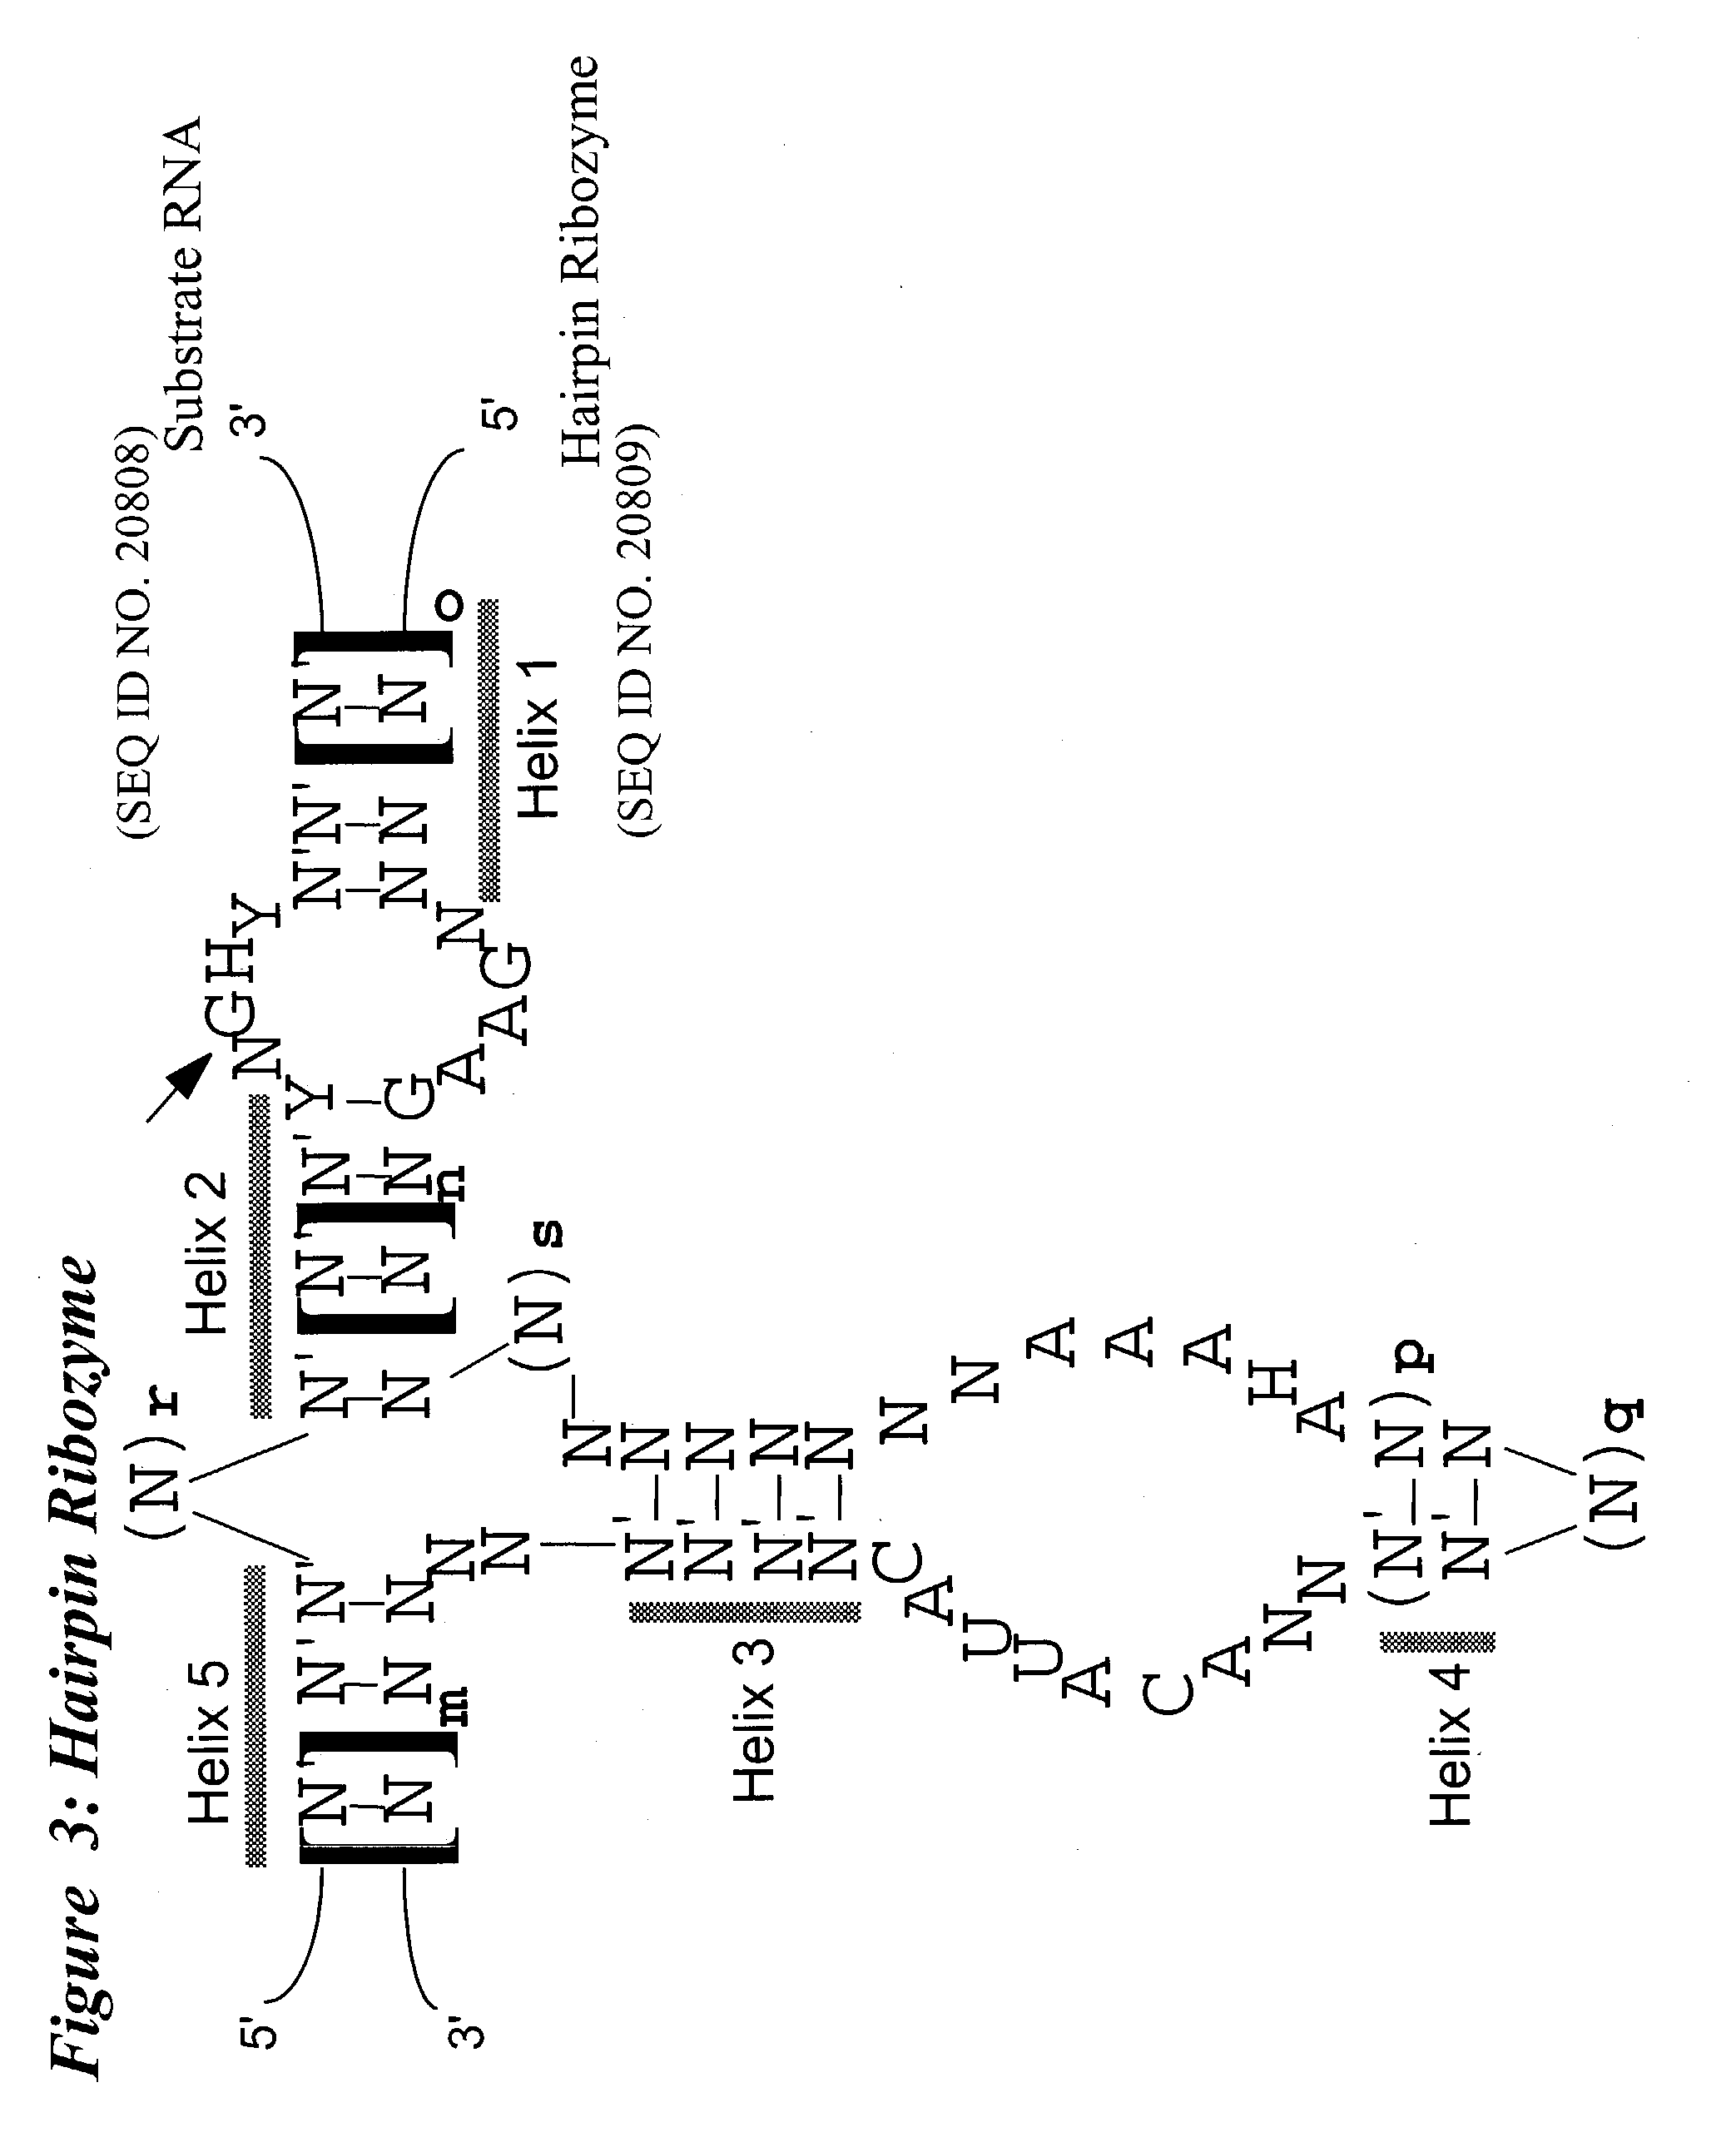 Us20040102389a1 Nucleic Acid Mediated Treatment Of Diseases Or Mtd Wiring Diagram 929 1072 Conditions Related To Levels Vascular Endothelial Growth Factor Receptor Vegf R